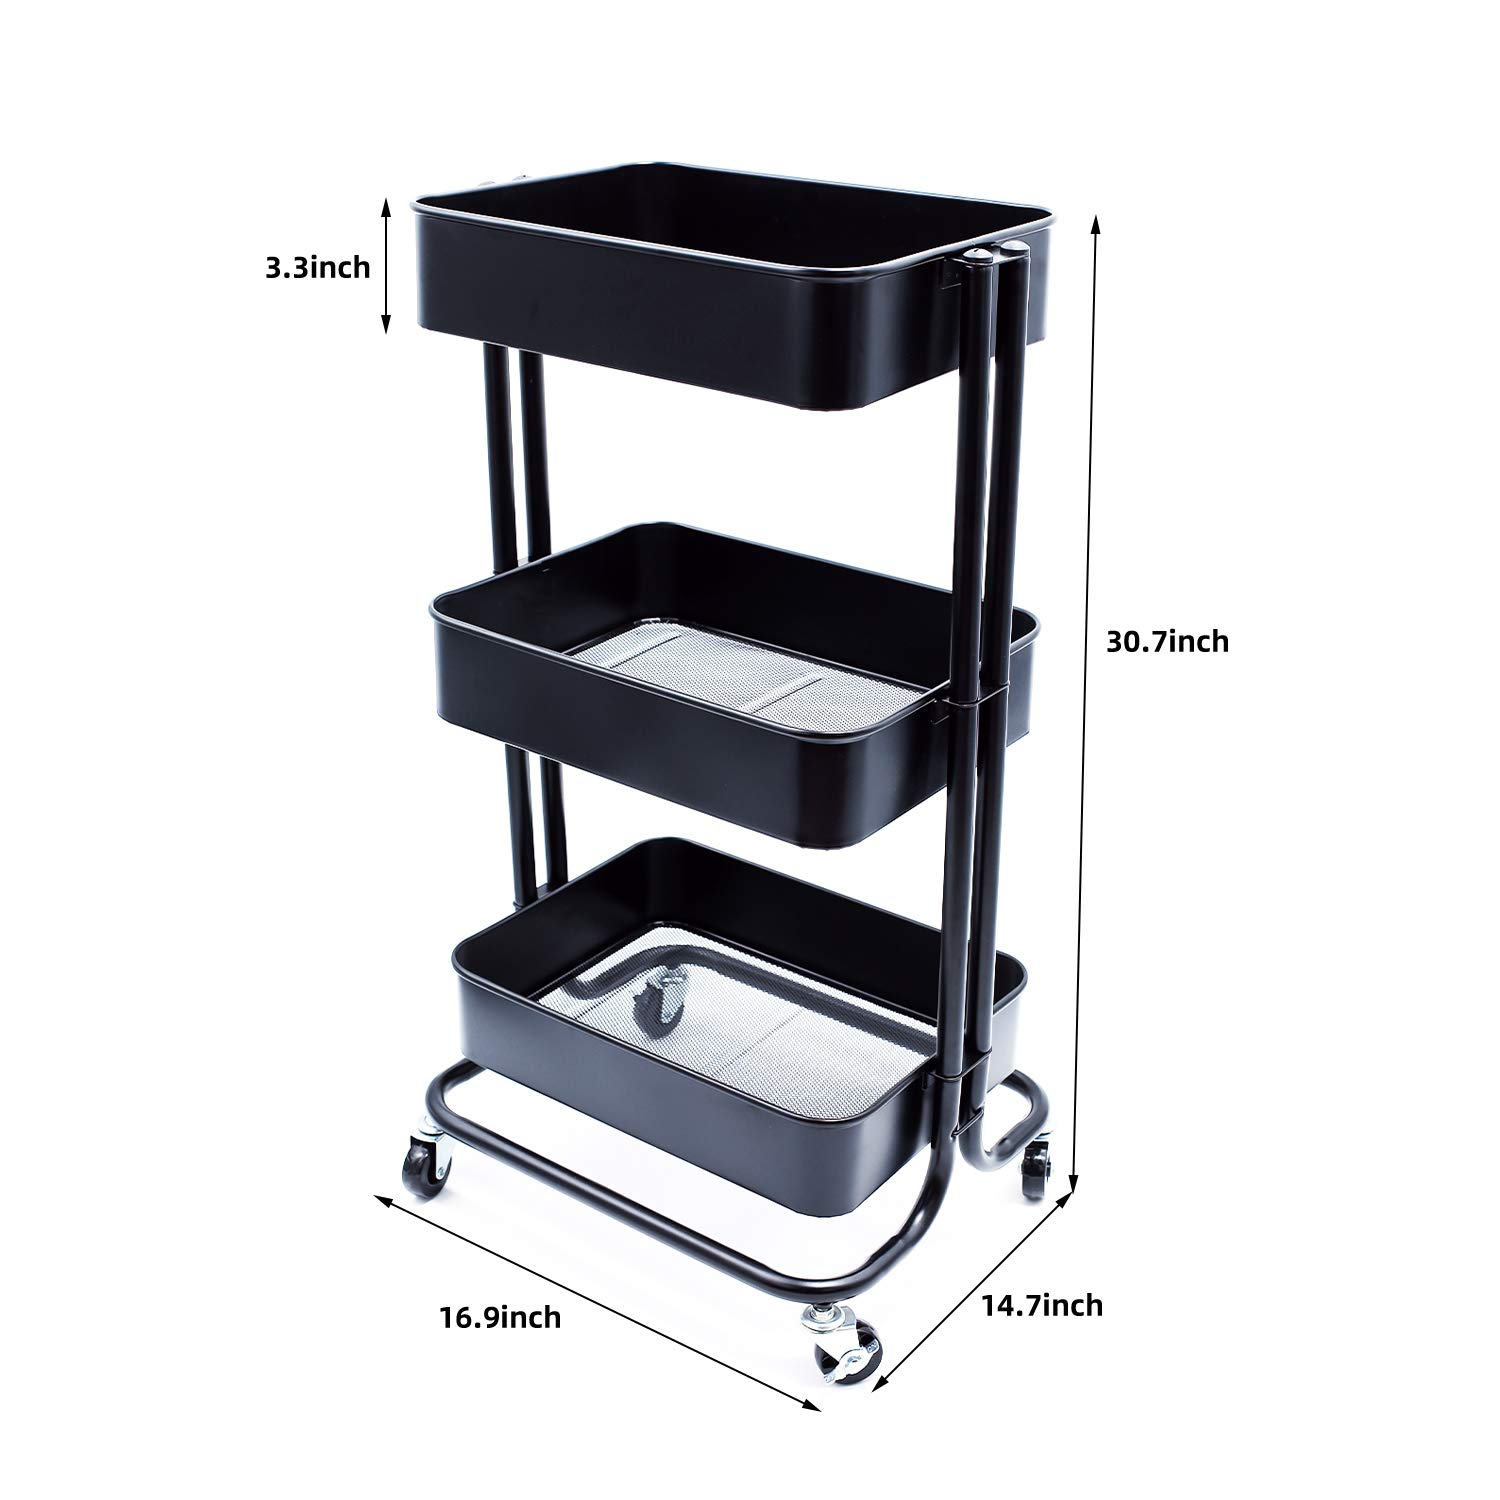 JANE EYRE 3 Tier Metal Rolling Storage Utility Cart on Wheels, Organization Cart Storage Shelves for Bedroom, Kitchen, Bathroom, Office, Nursery Room, Pantry – Black